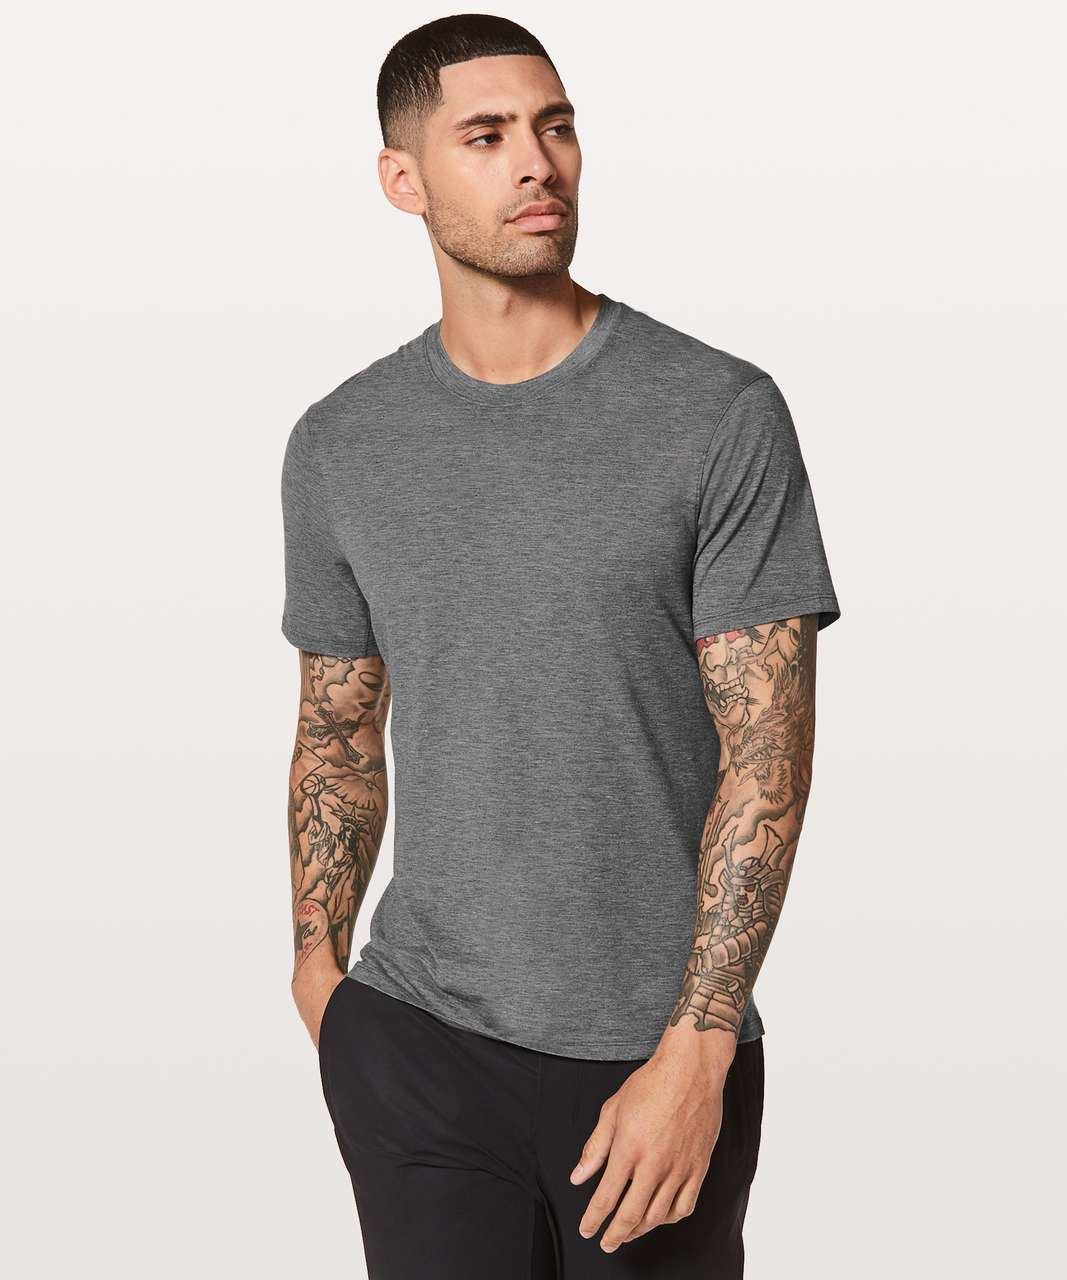 Lululemon Somatic Aero Short Sleeve - Heathered Black